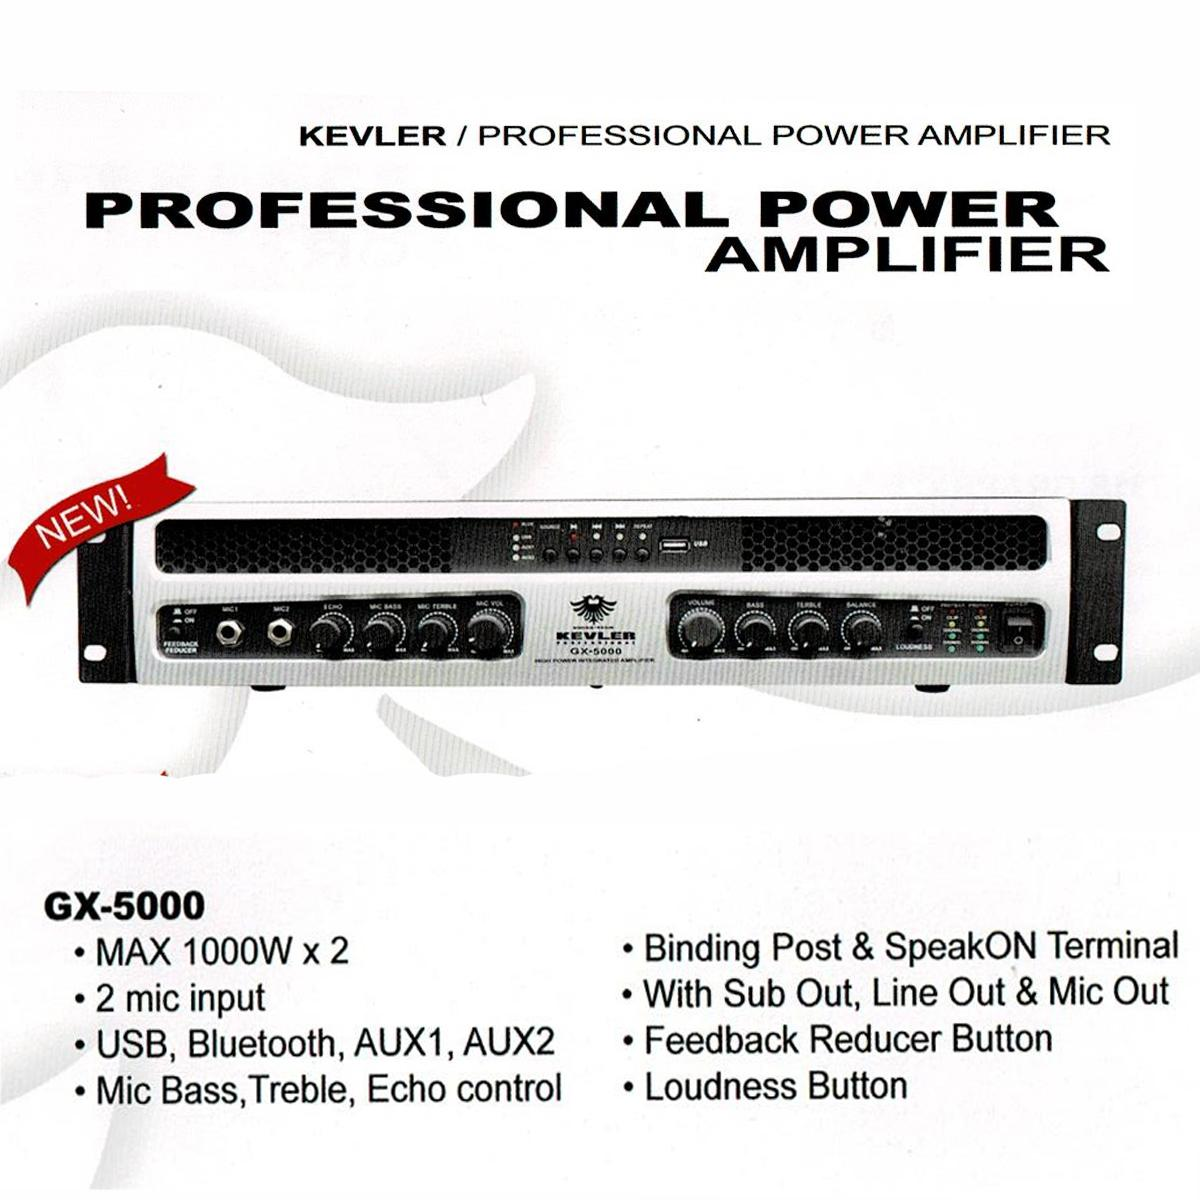 Kevler Philippines Audio Amplifier For Sale Prices 800w Circuit The Power Ideal Home 2018 Gx 5000 1000w X2 Professional